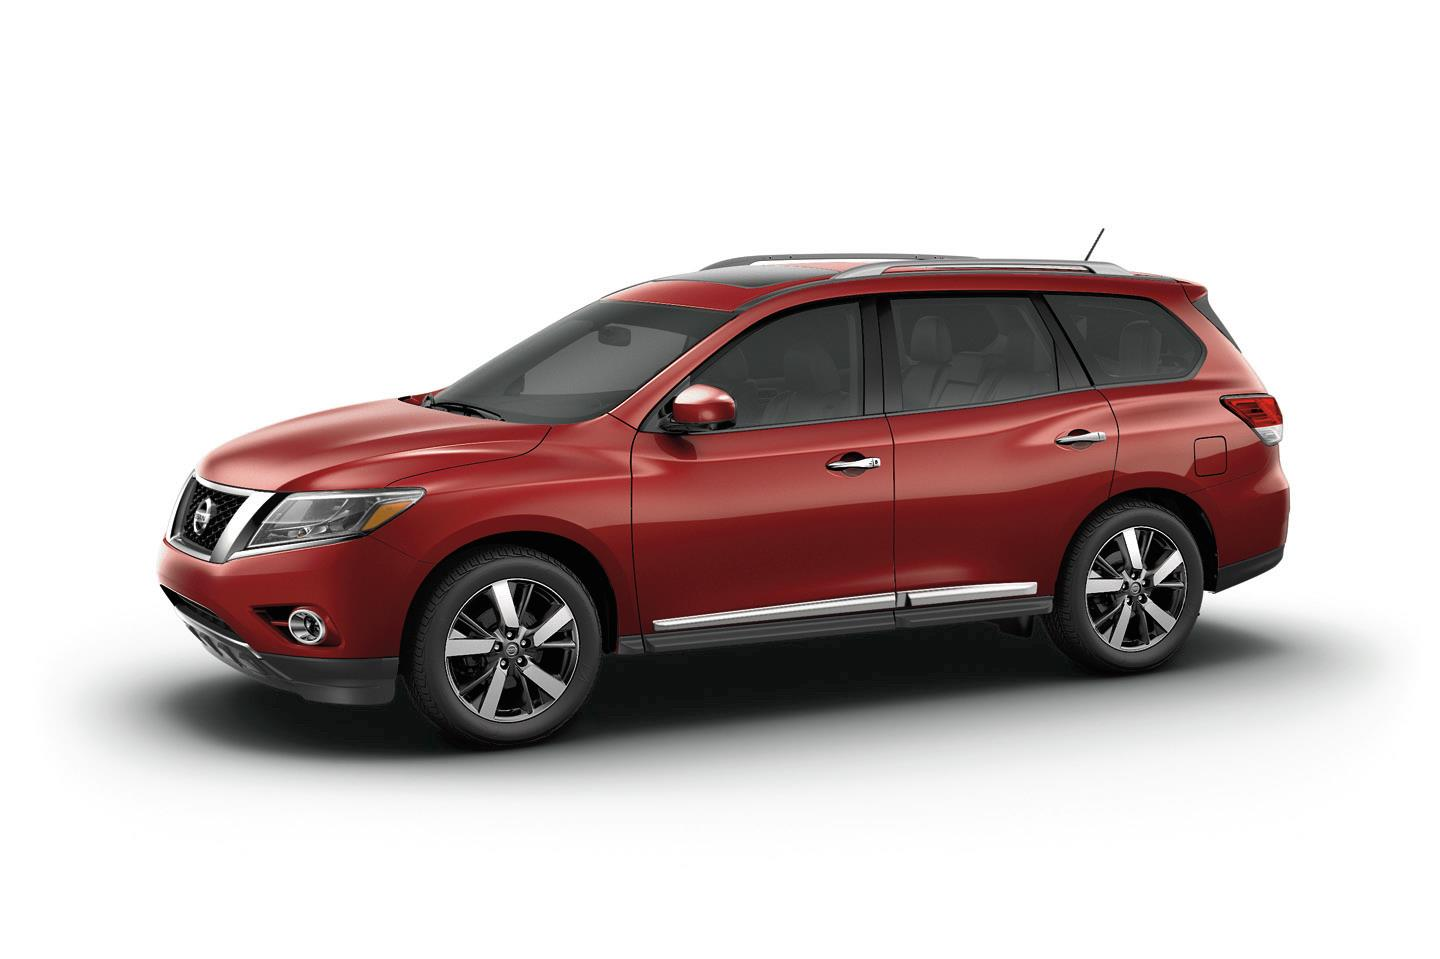 2015 Nissan Pathfinder News and Information